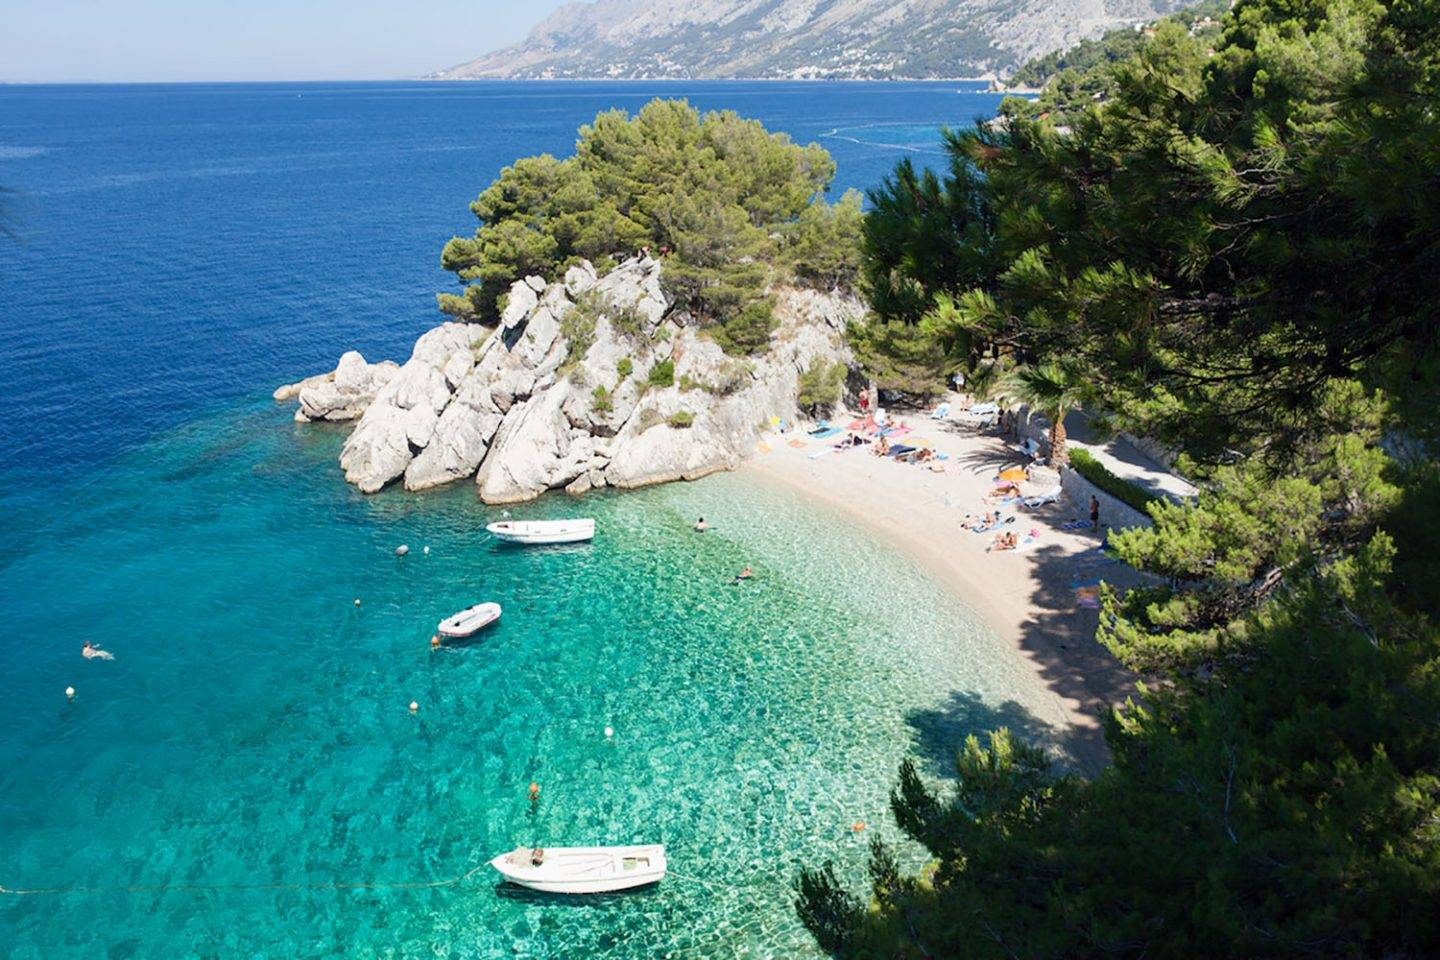 Podrace Bay, one of the most stunning beachesin Europe. Go early in the morning to claim your spot!